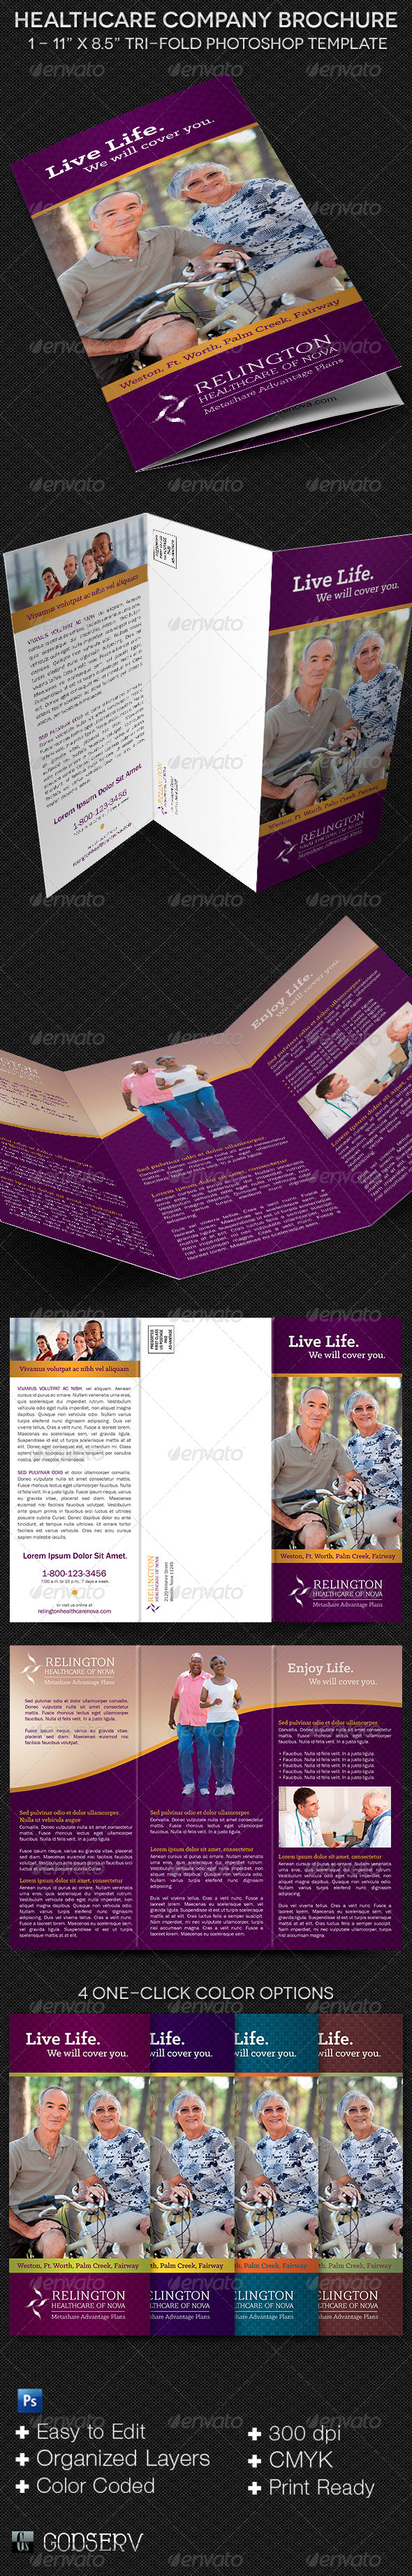 Healthcare Company Brochure Template - Informational Brochures